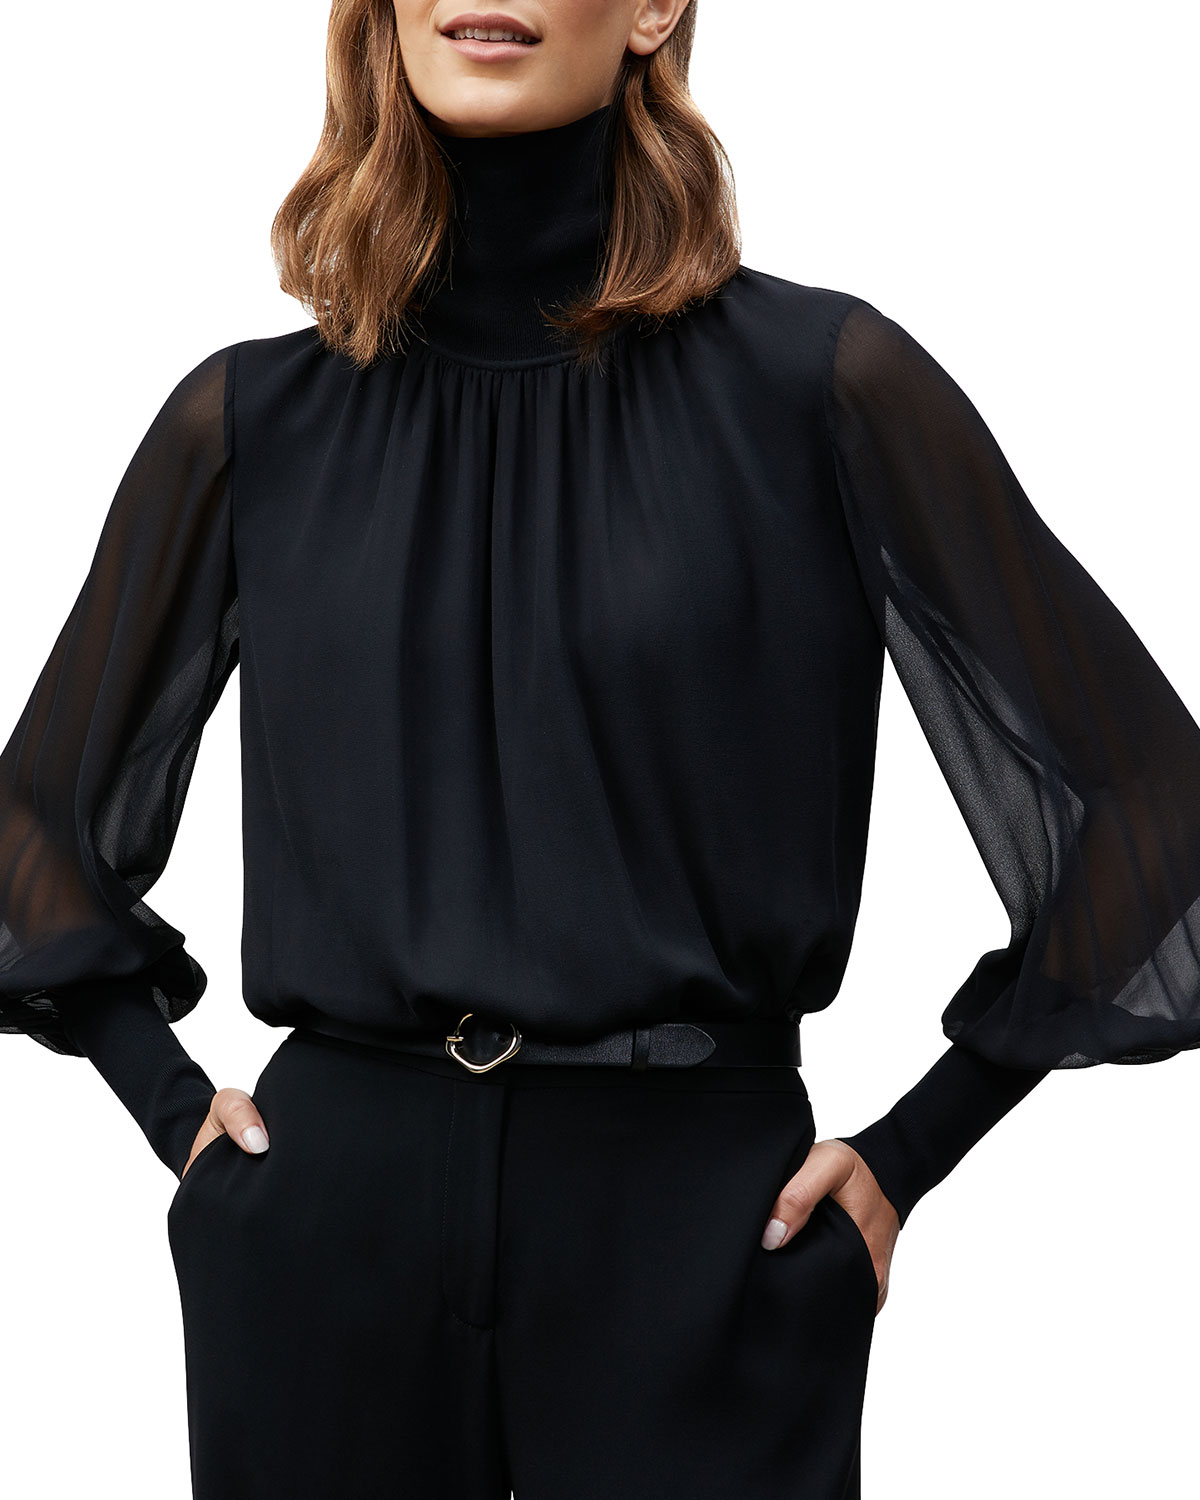 Lafayette 148 BERGITTE BLOUSE WITH KNIT COMBO